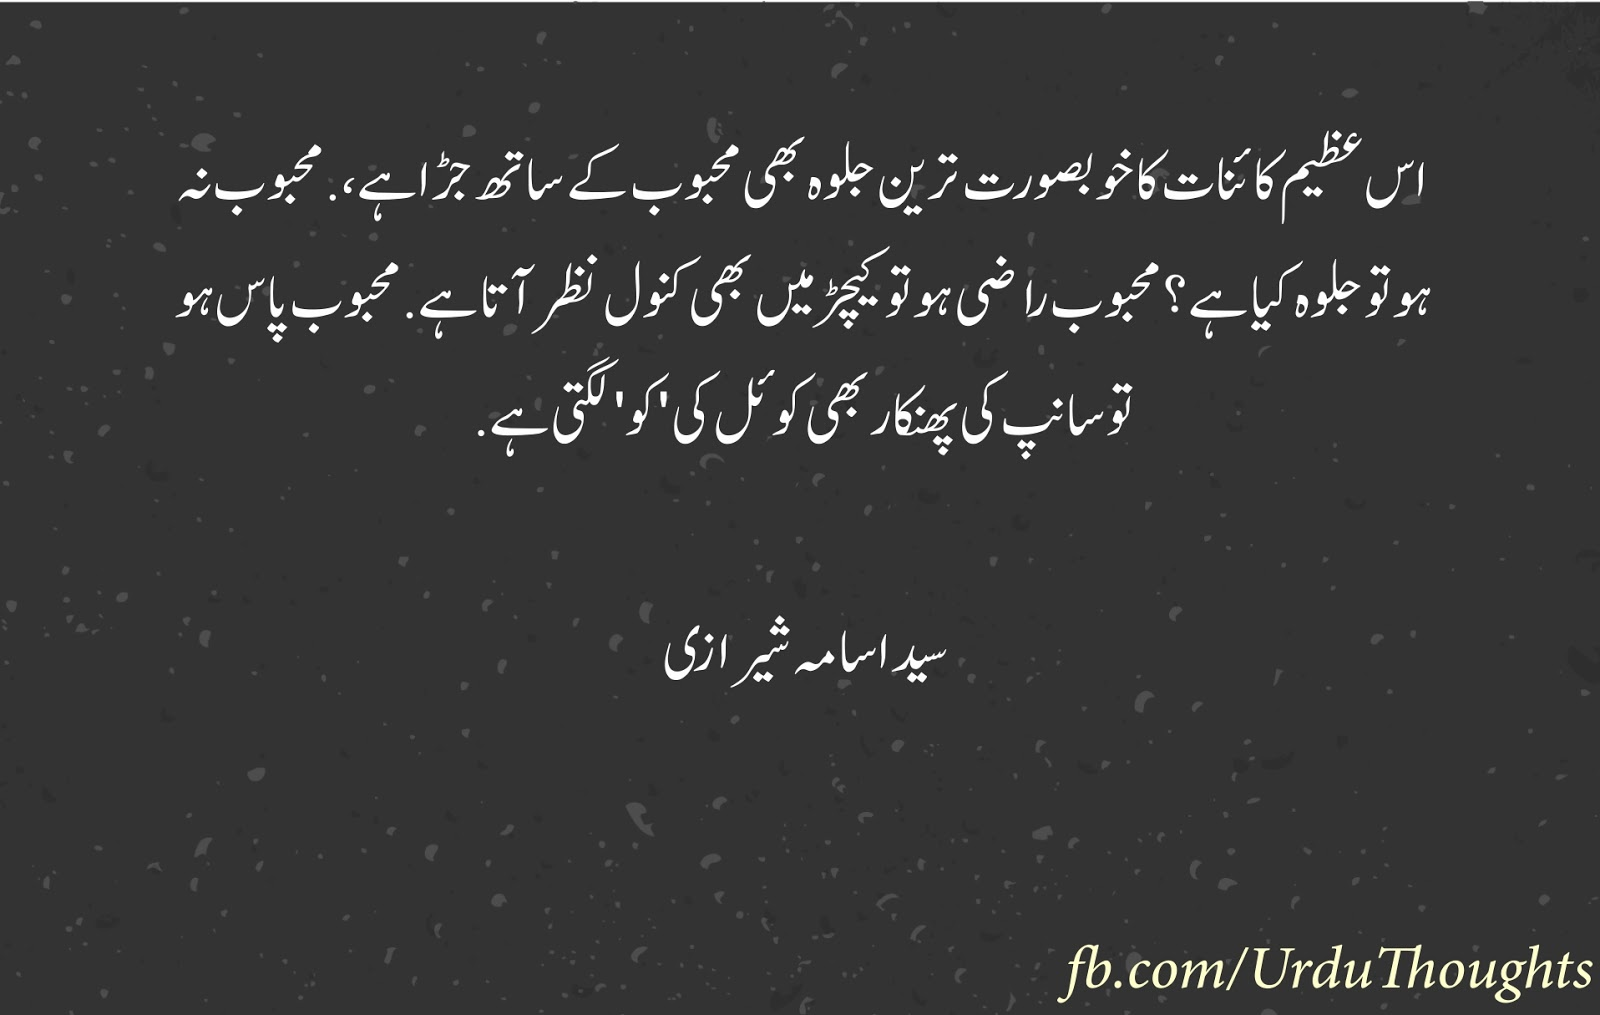 khoobsurat iqtibas urdu quotes with images urdu thoughts